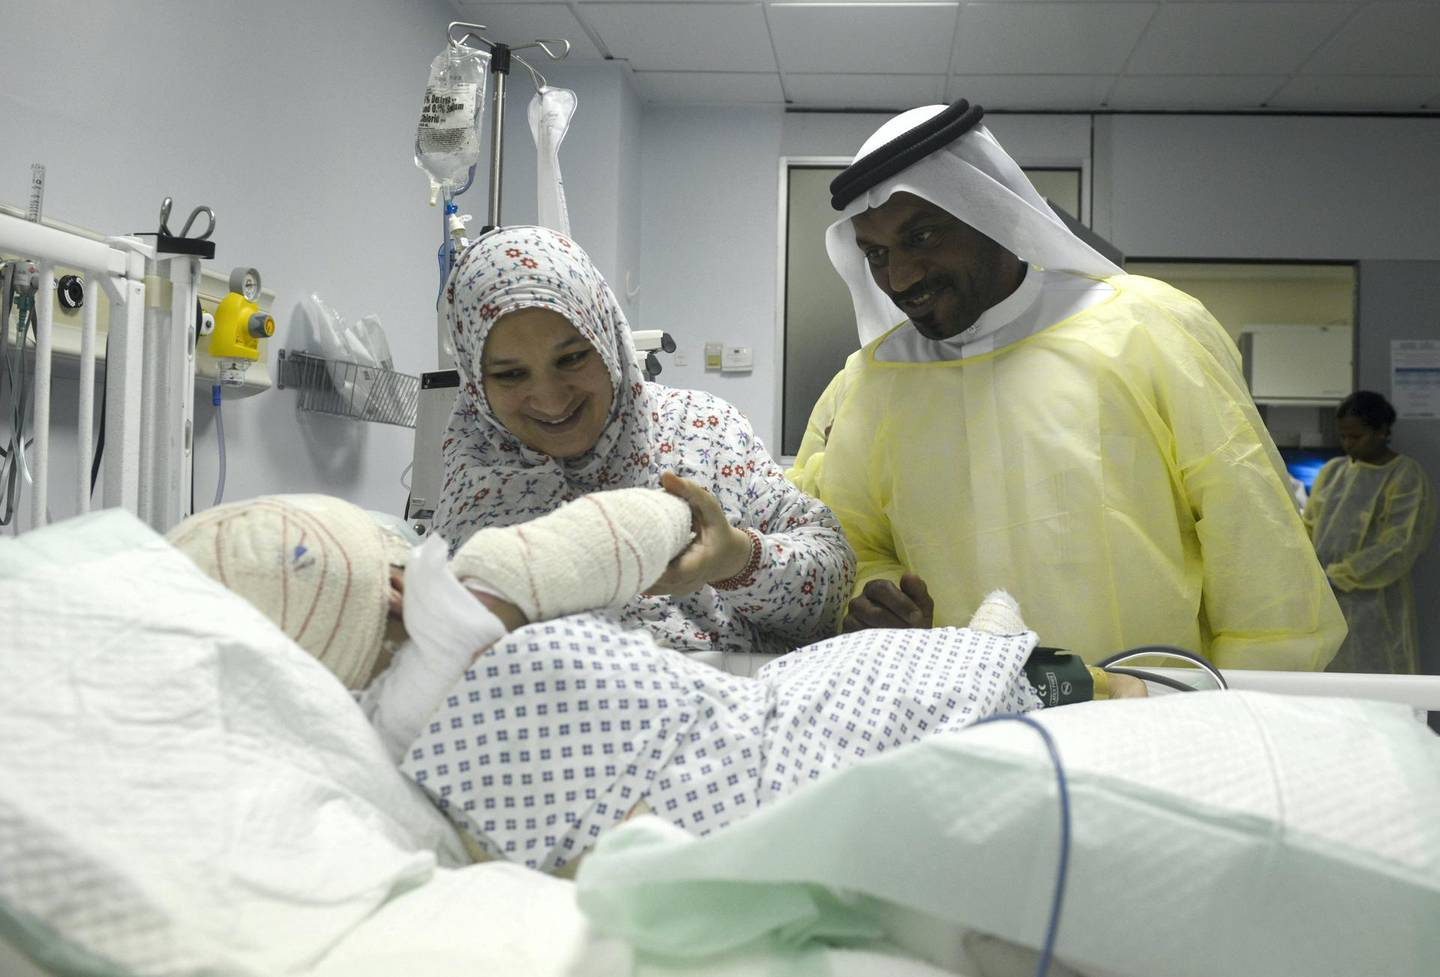 Abu Dhabi, United Arab Emirates - From left, Um Saeed, mother and Obeid Saeed, the grandfather takes care of Sheikha Saeed, two year old, badly burned after a pressure cooker explosion in the kitchen, and is admitted at Mafraq Hospital on May 31, 2018. (Khushnum Bhandari/ The National)